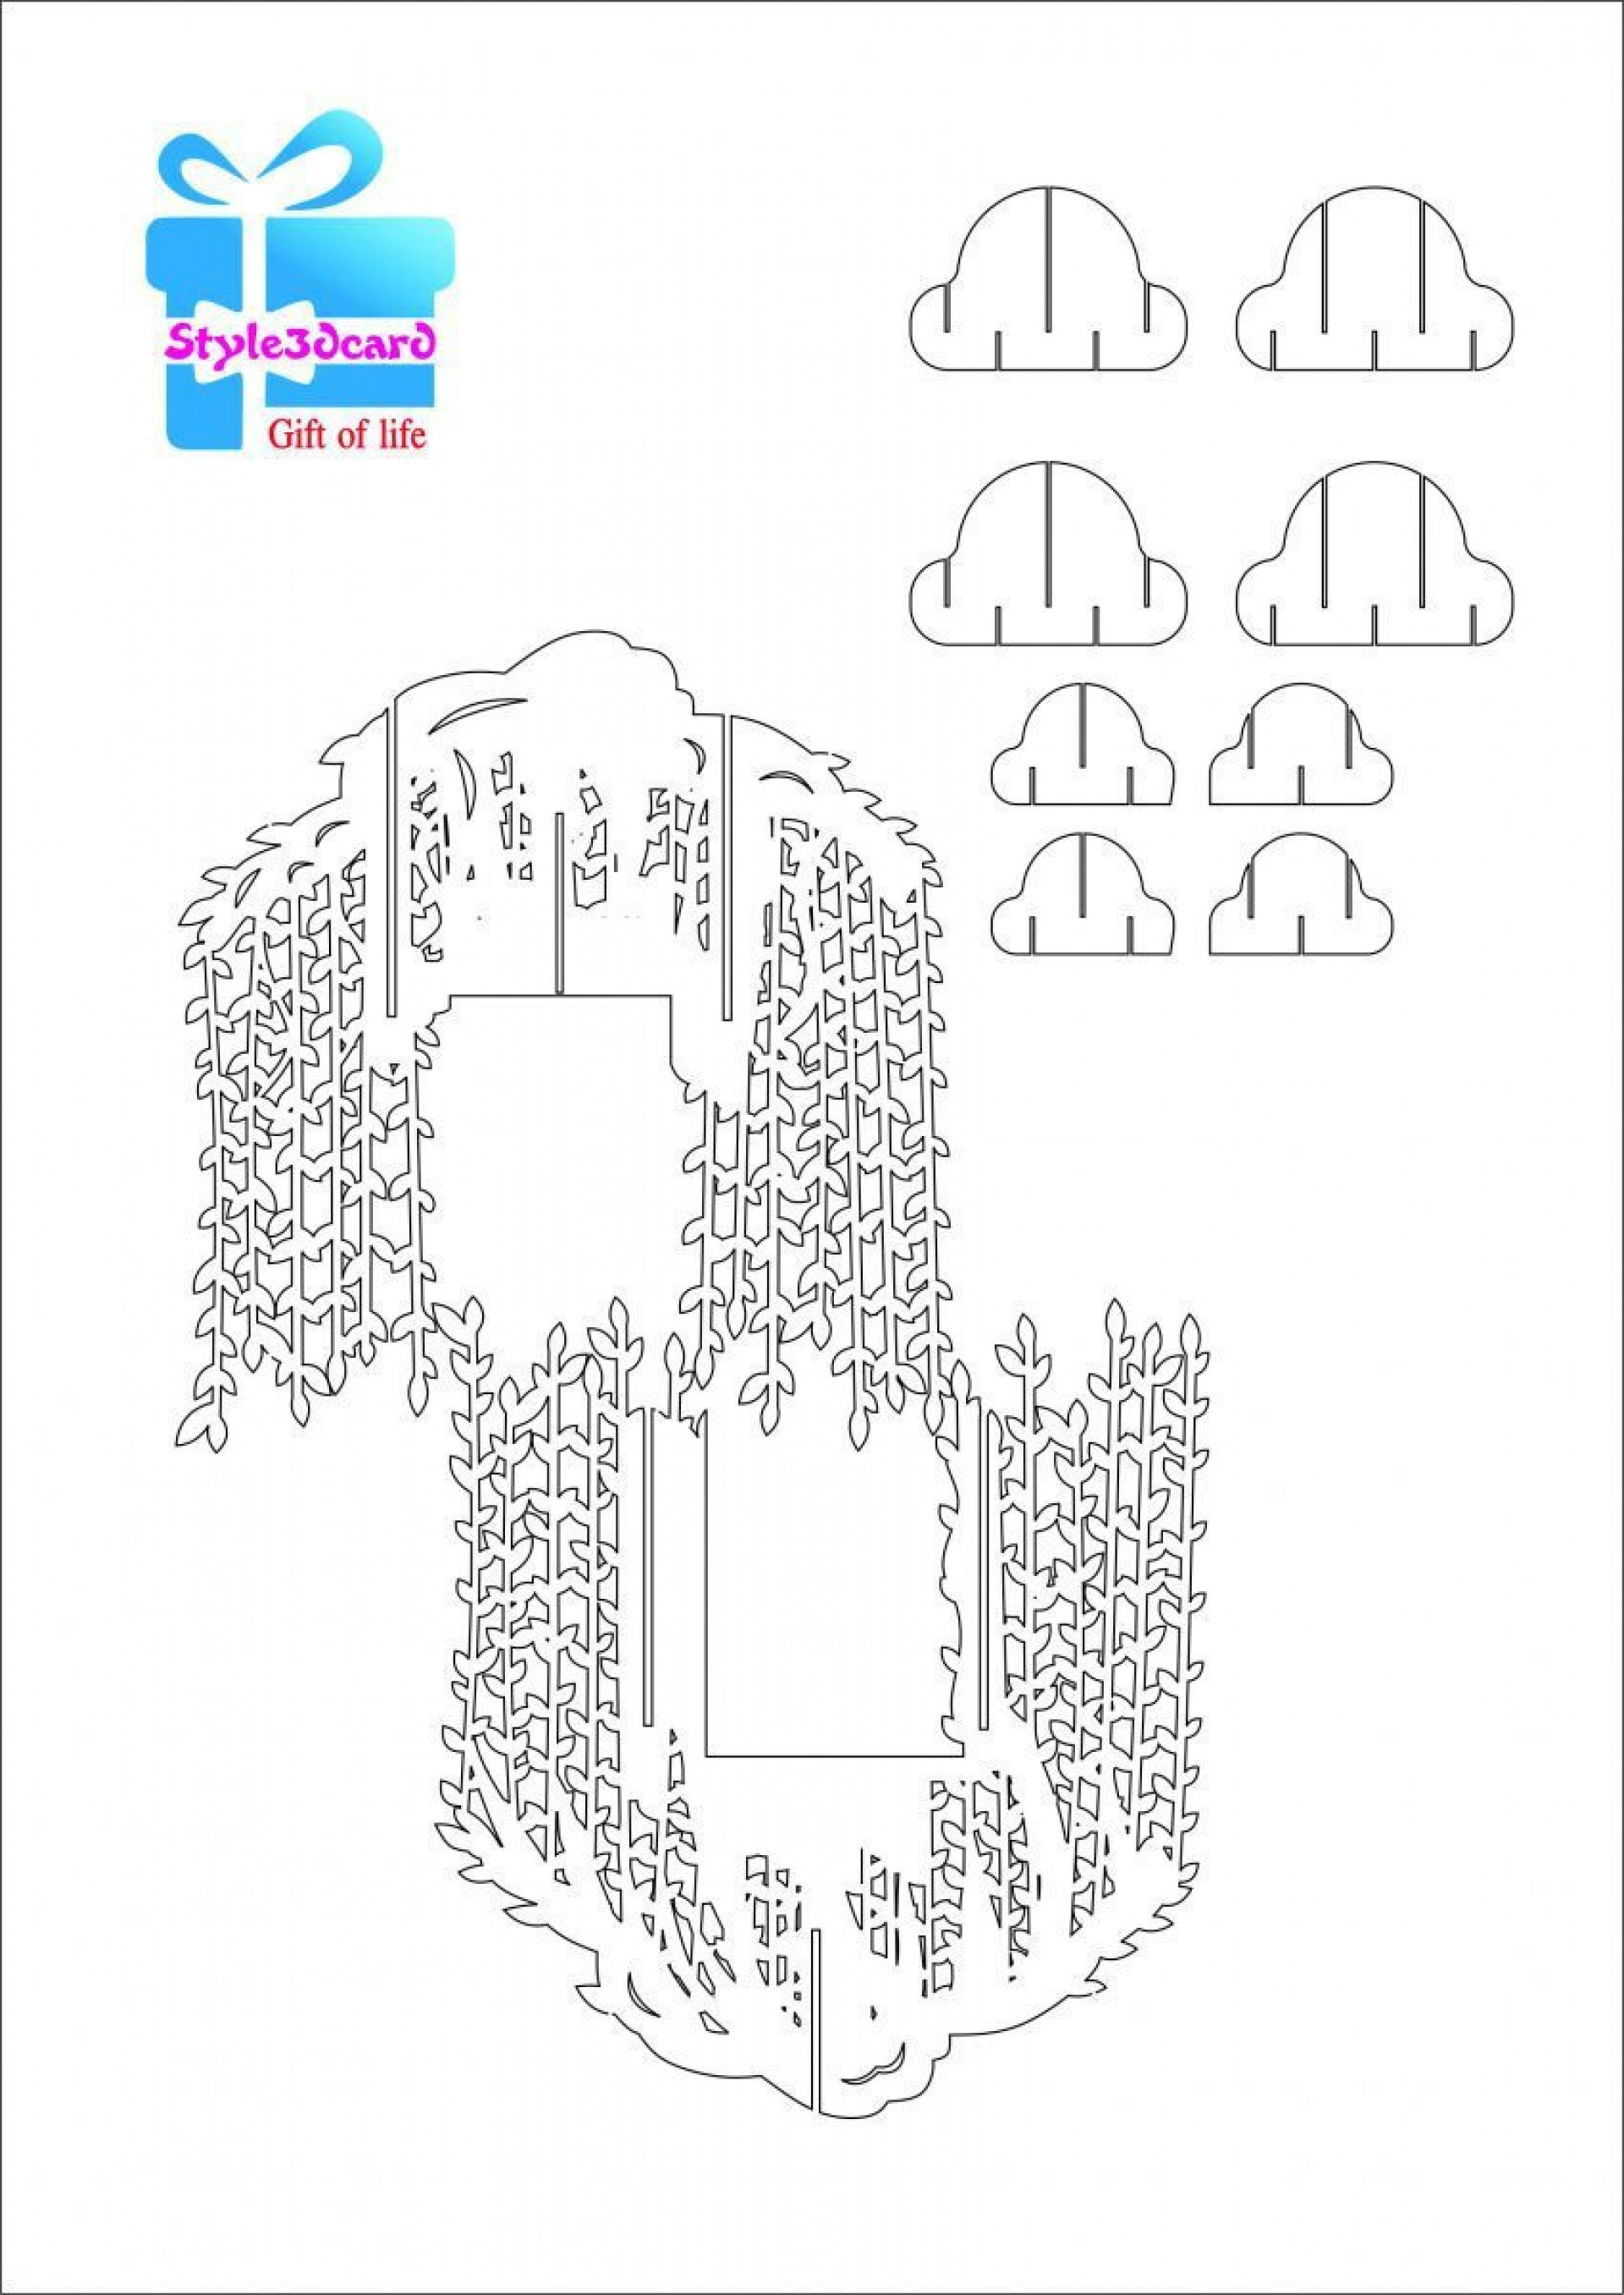 002 Wonderful Pop Up Card Template High Def  Templates Birthday Free Download Printable Flower1920